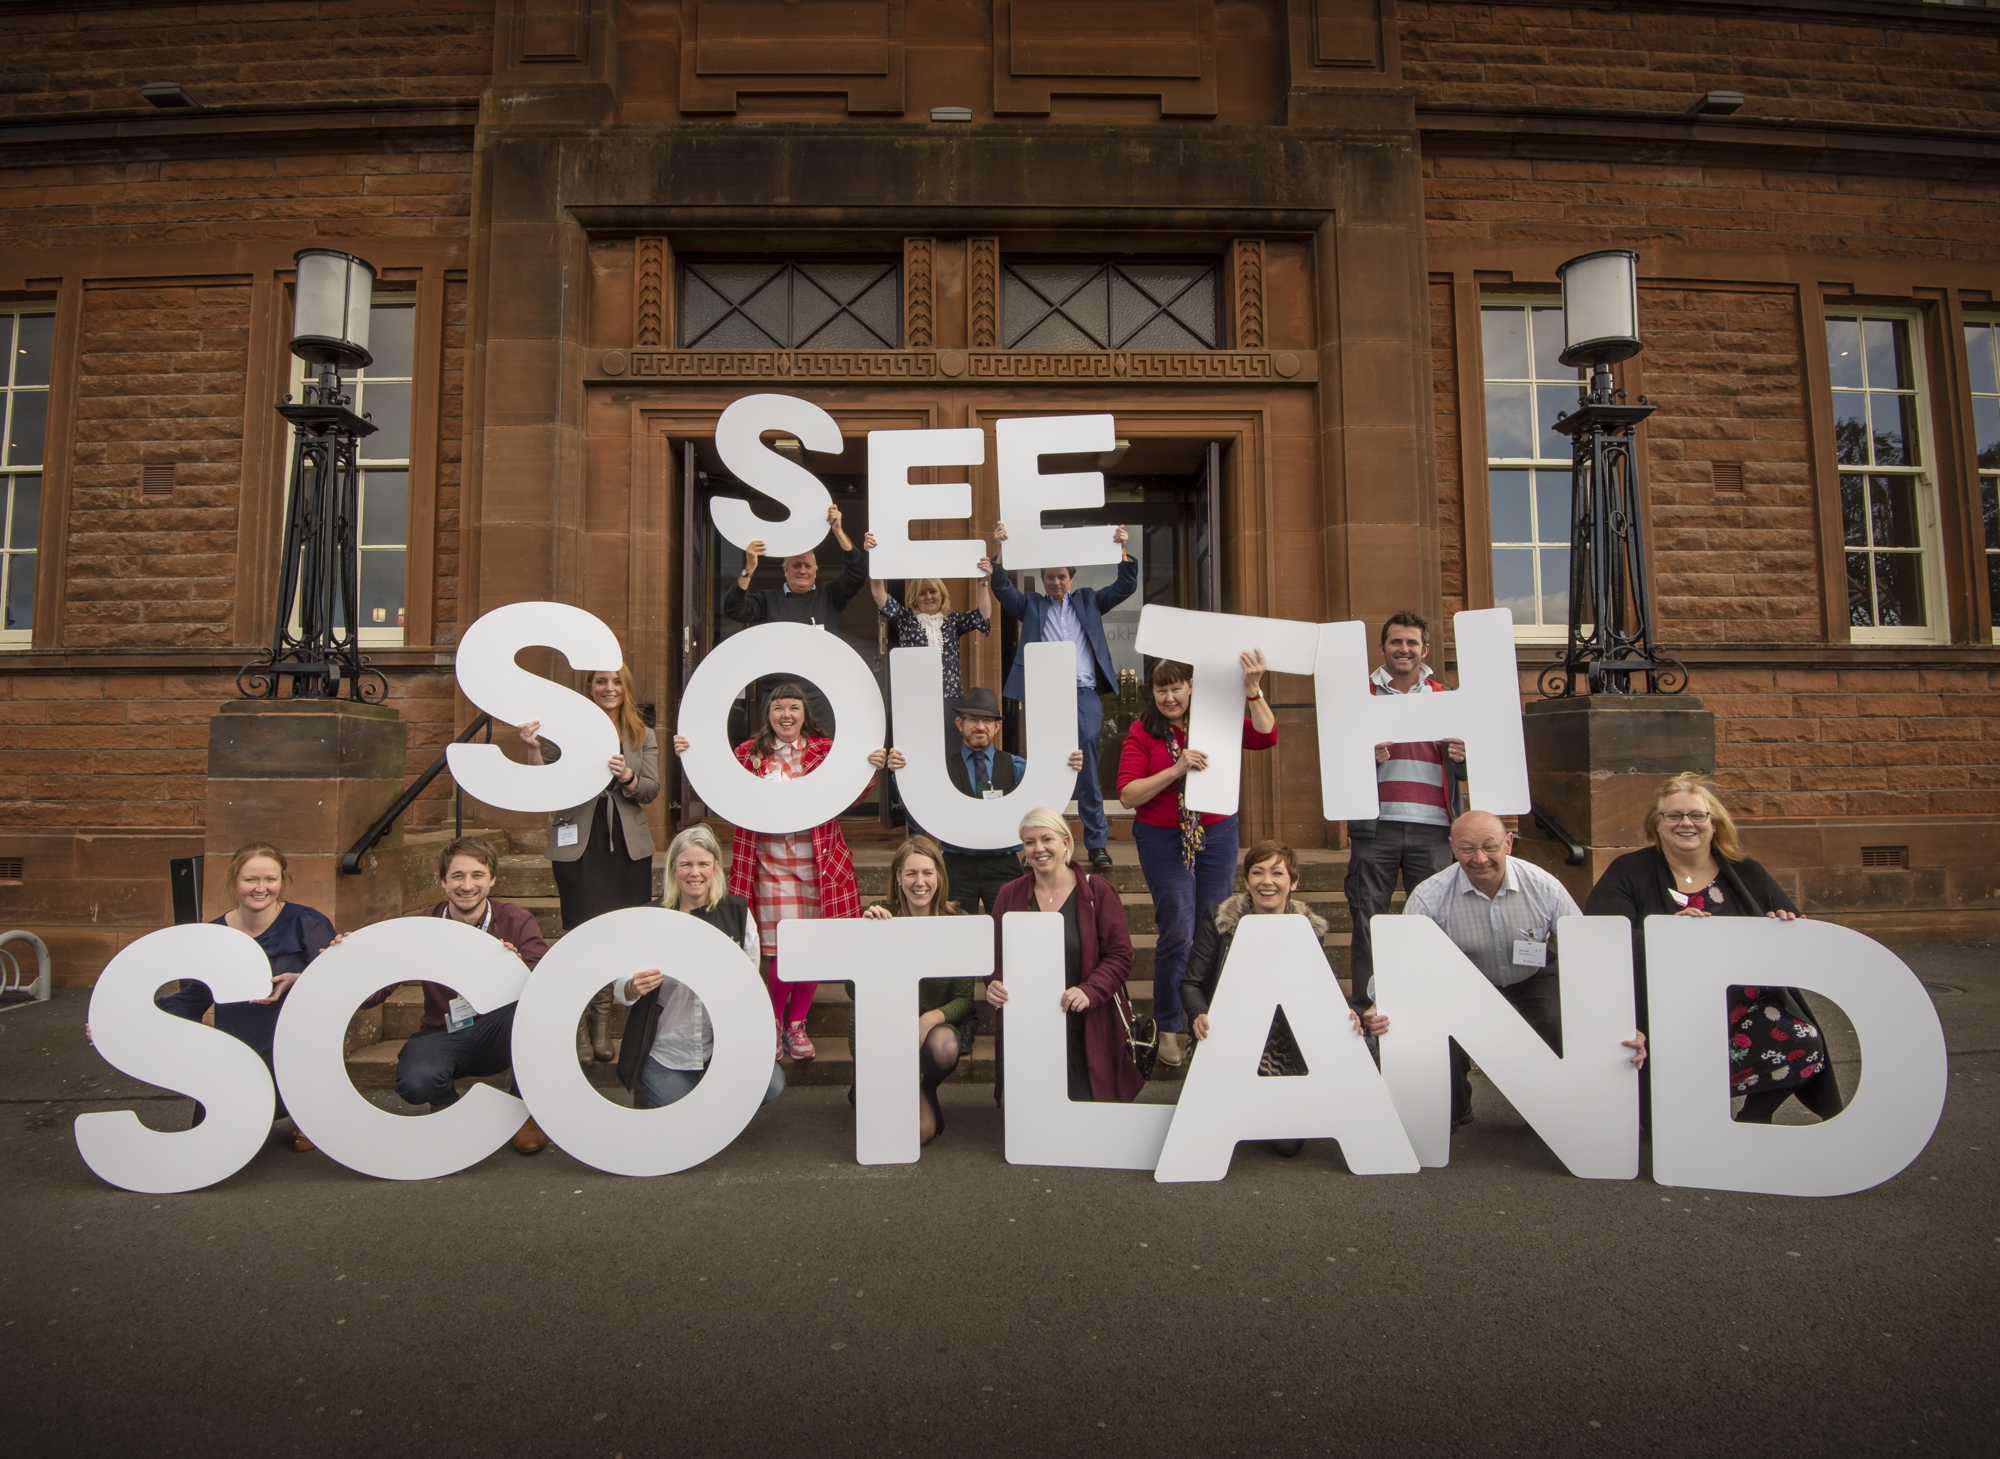 See South Scotland launch event held at Easterbrook Hall in Dumfries.